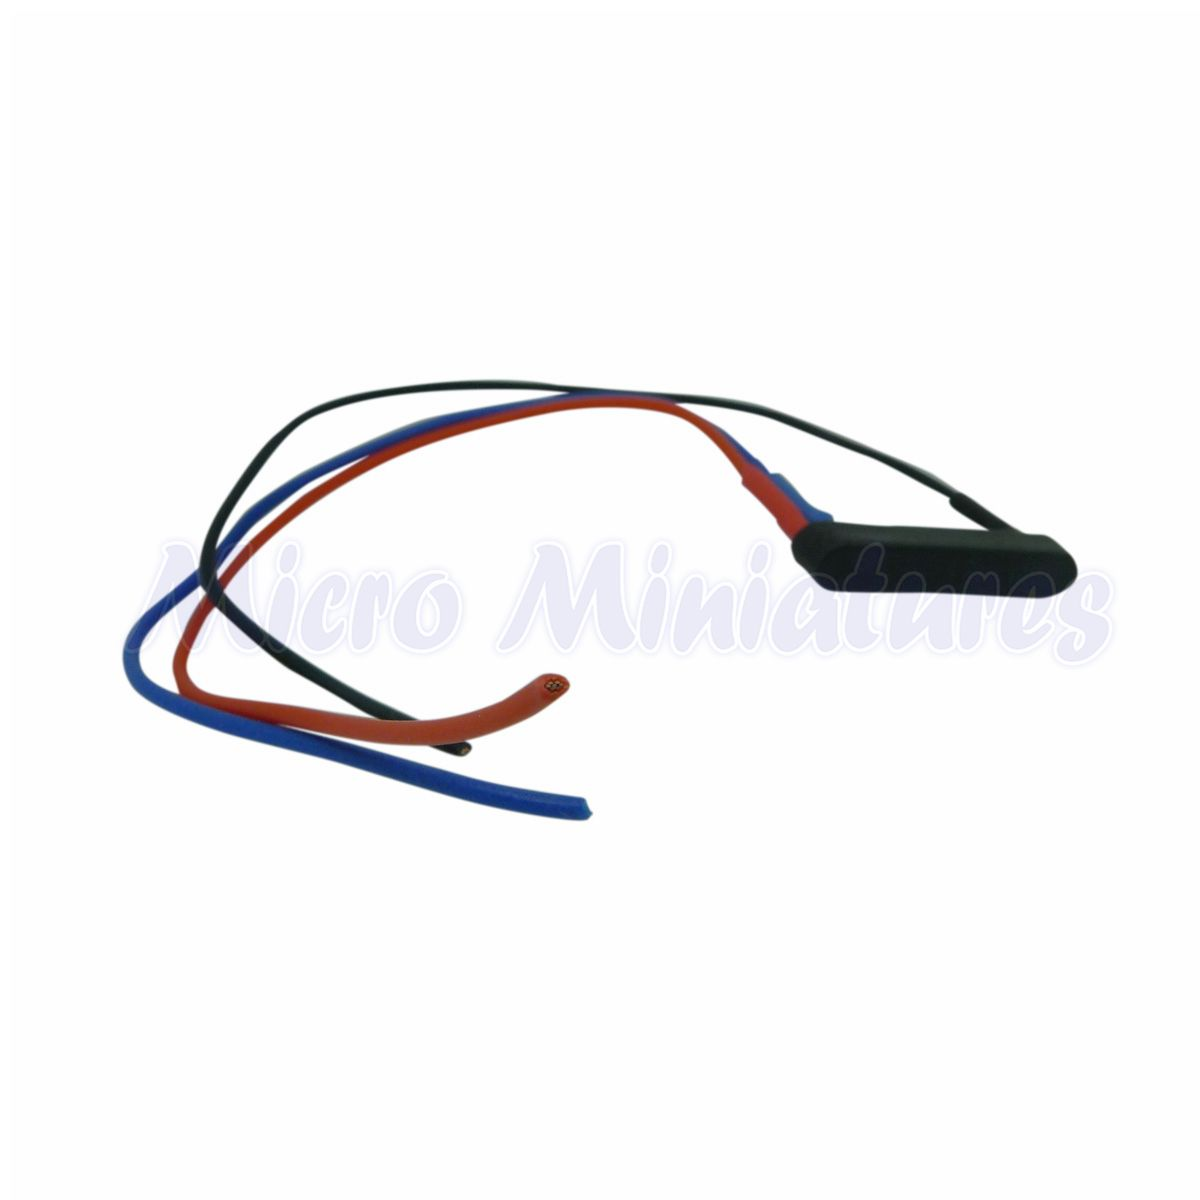 Reed Switch Change over type with Neodymium Disc Magnet - Micro ...